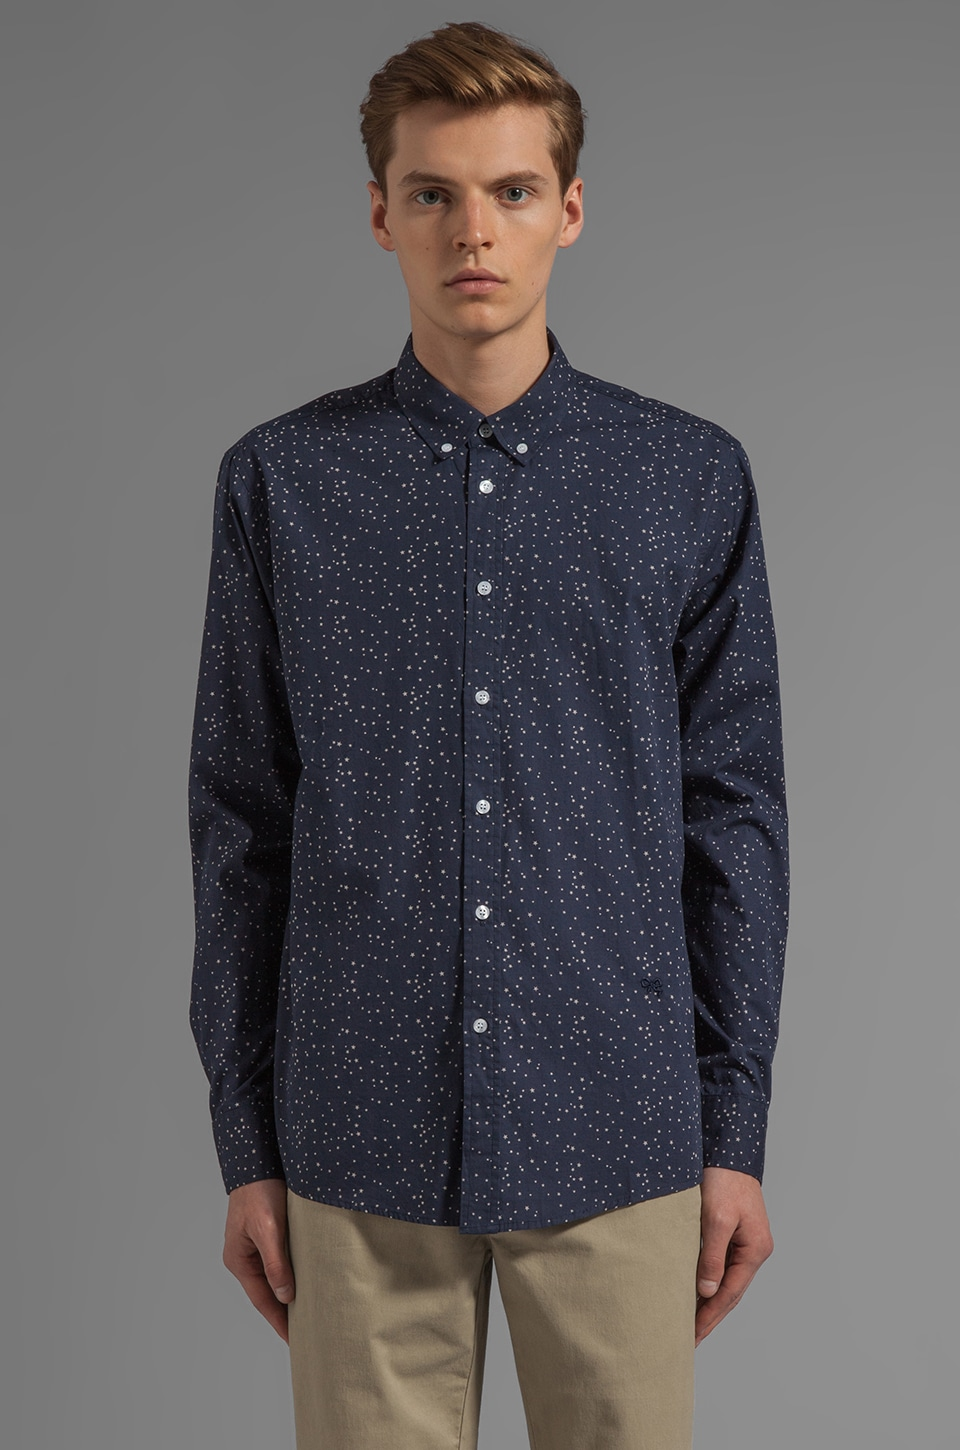 Soulland Ziggy Button Down w/ Stars in Navy